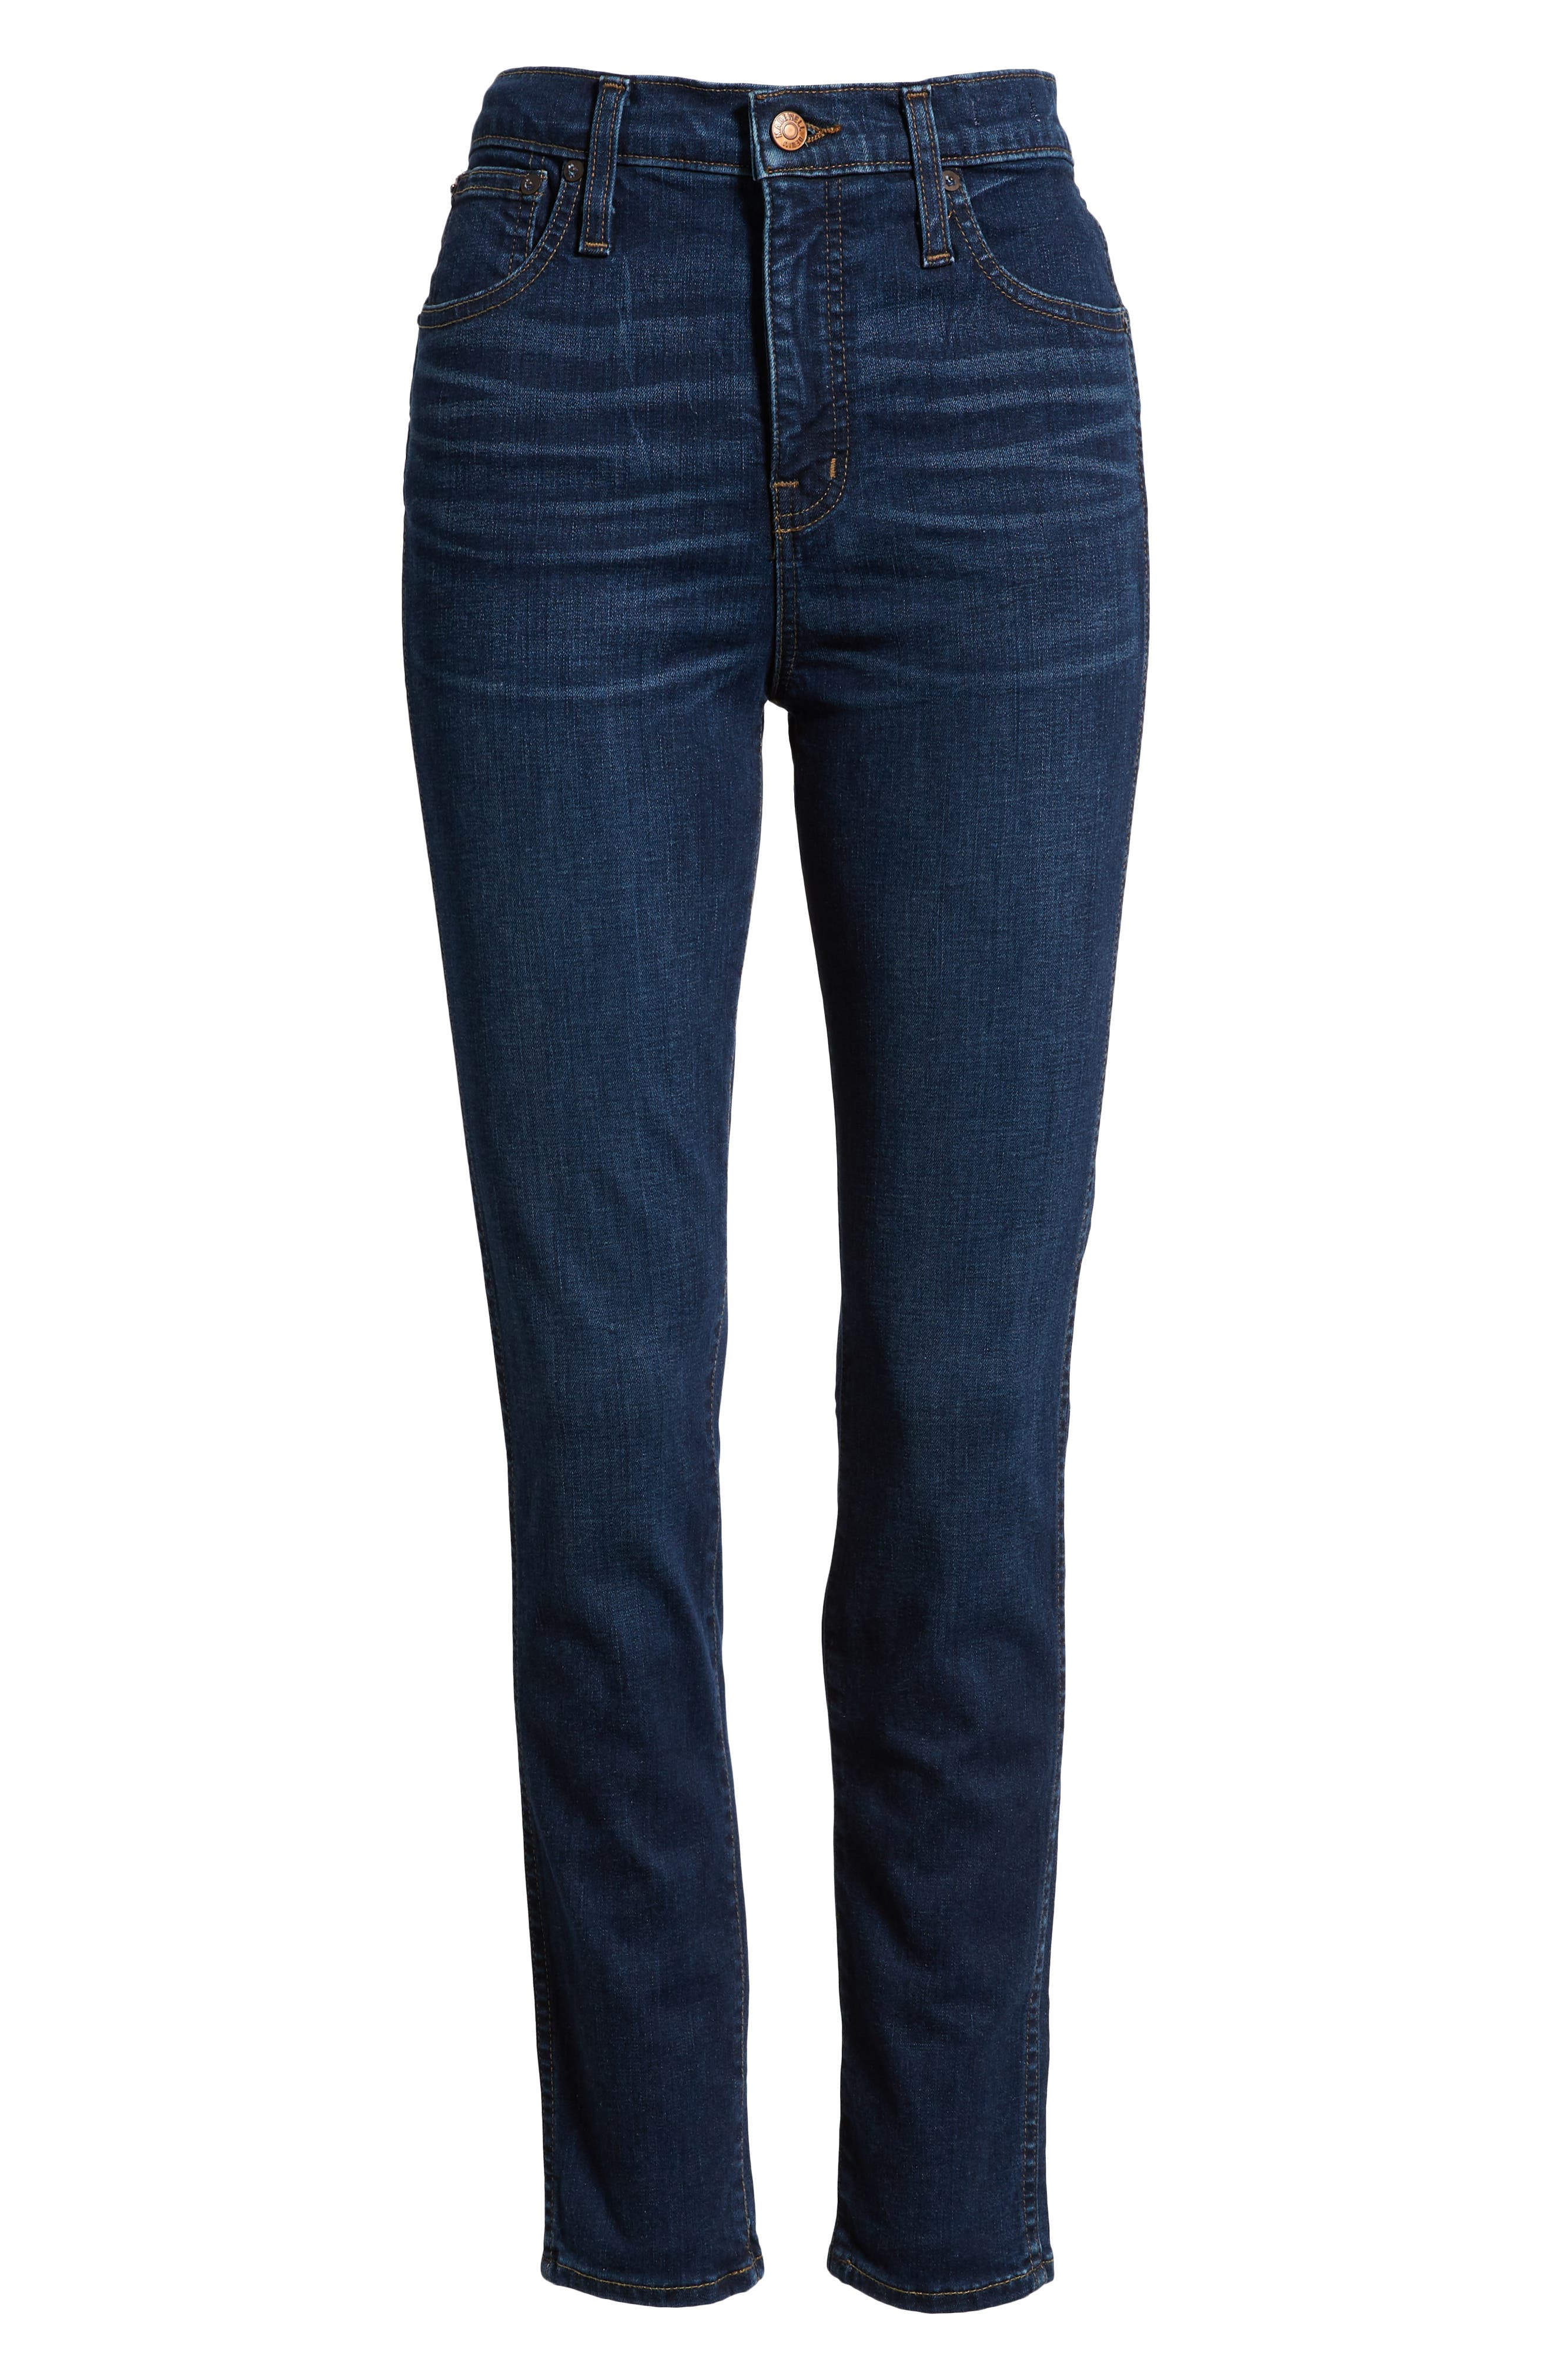 10-Inch High-Rise Skinny Jeans,                             Alternate thumbnail 4, color,                             HAYES WASH